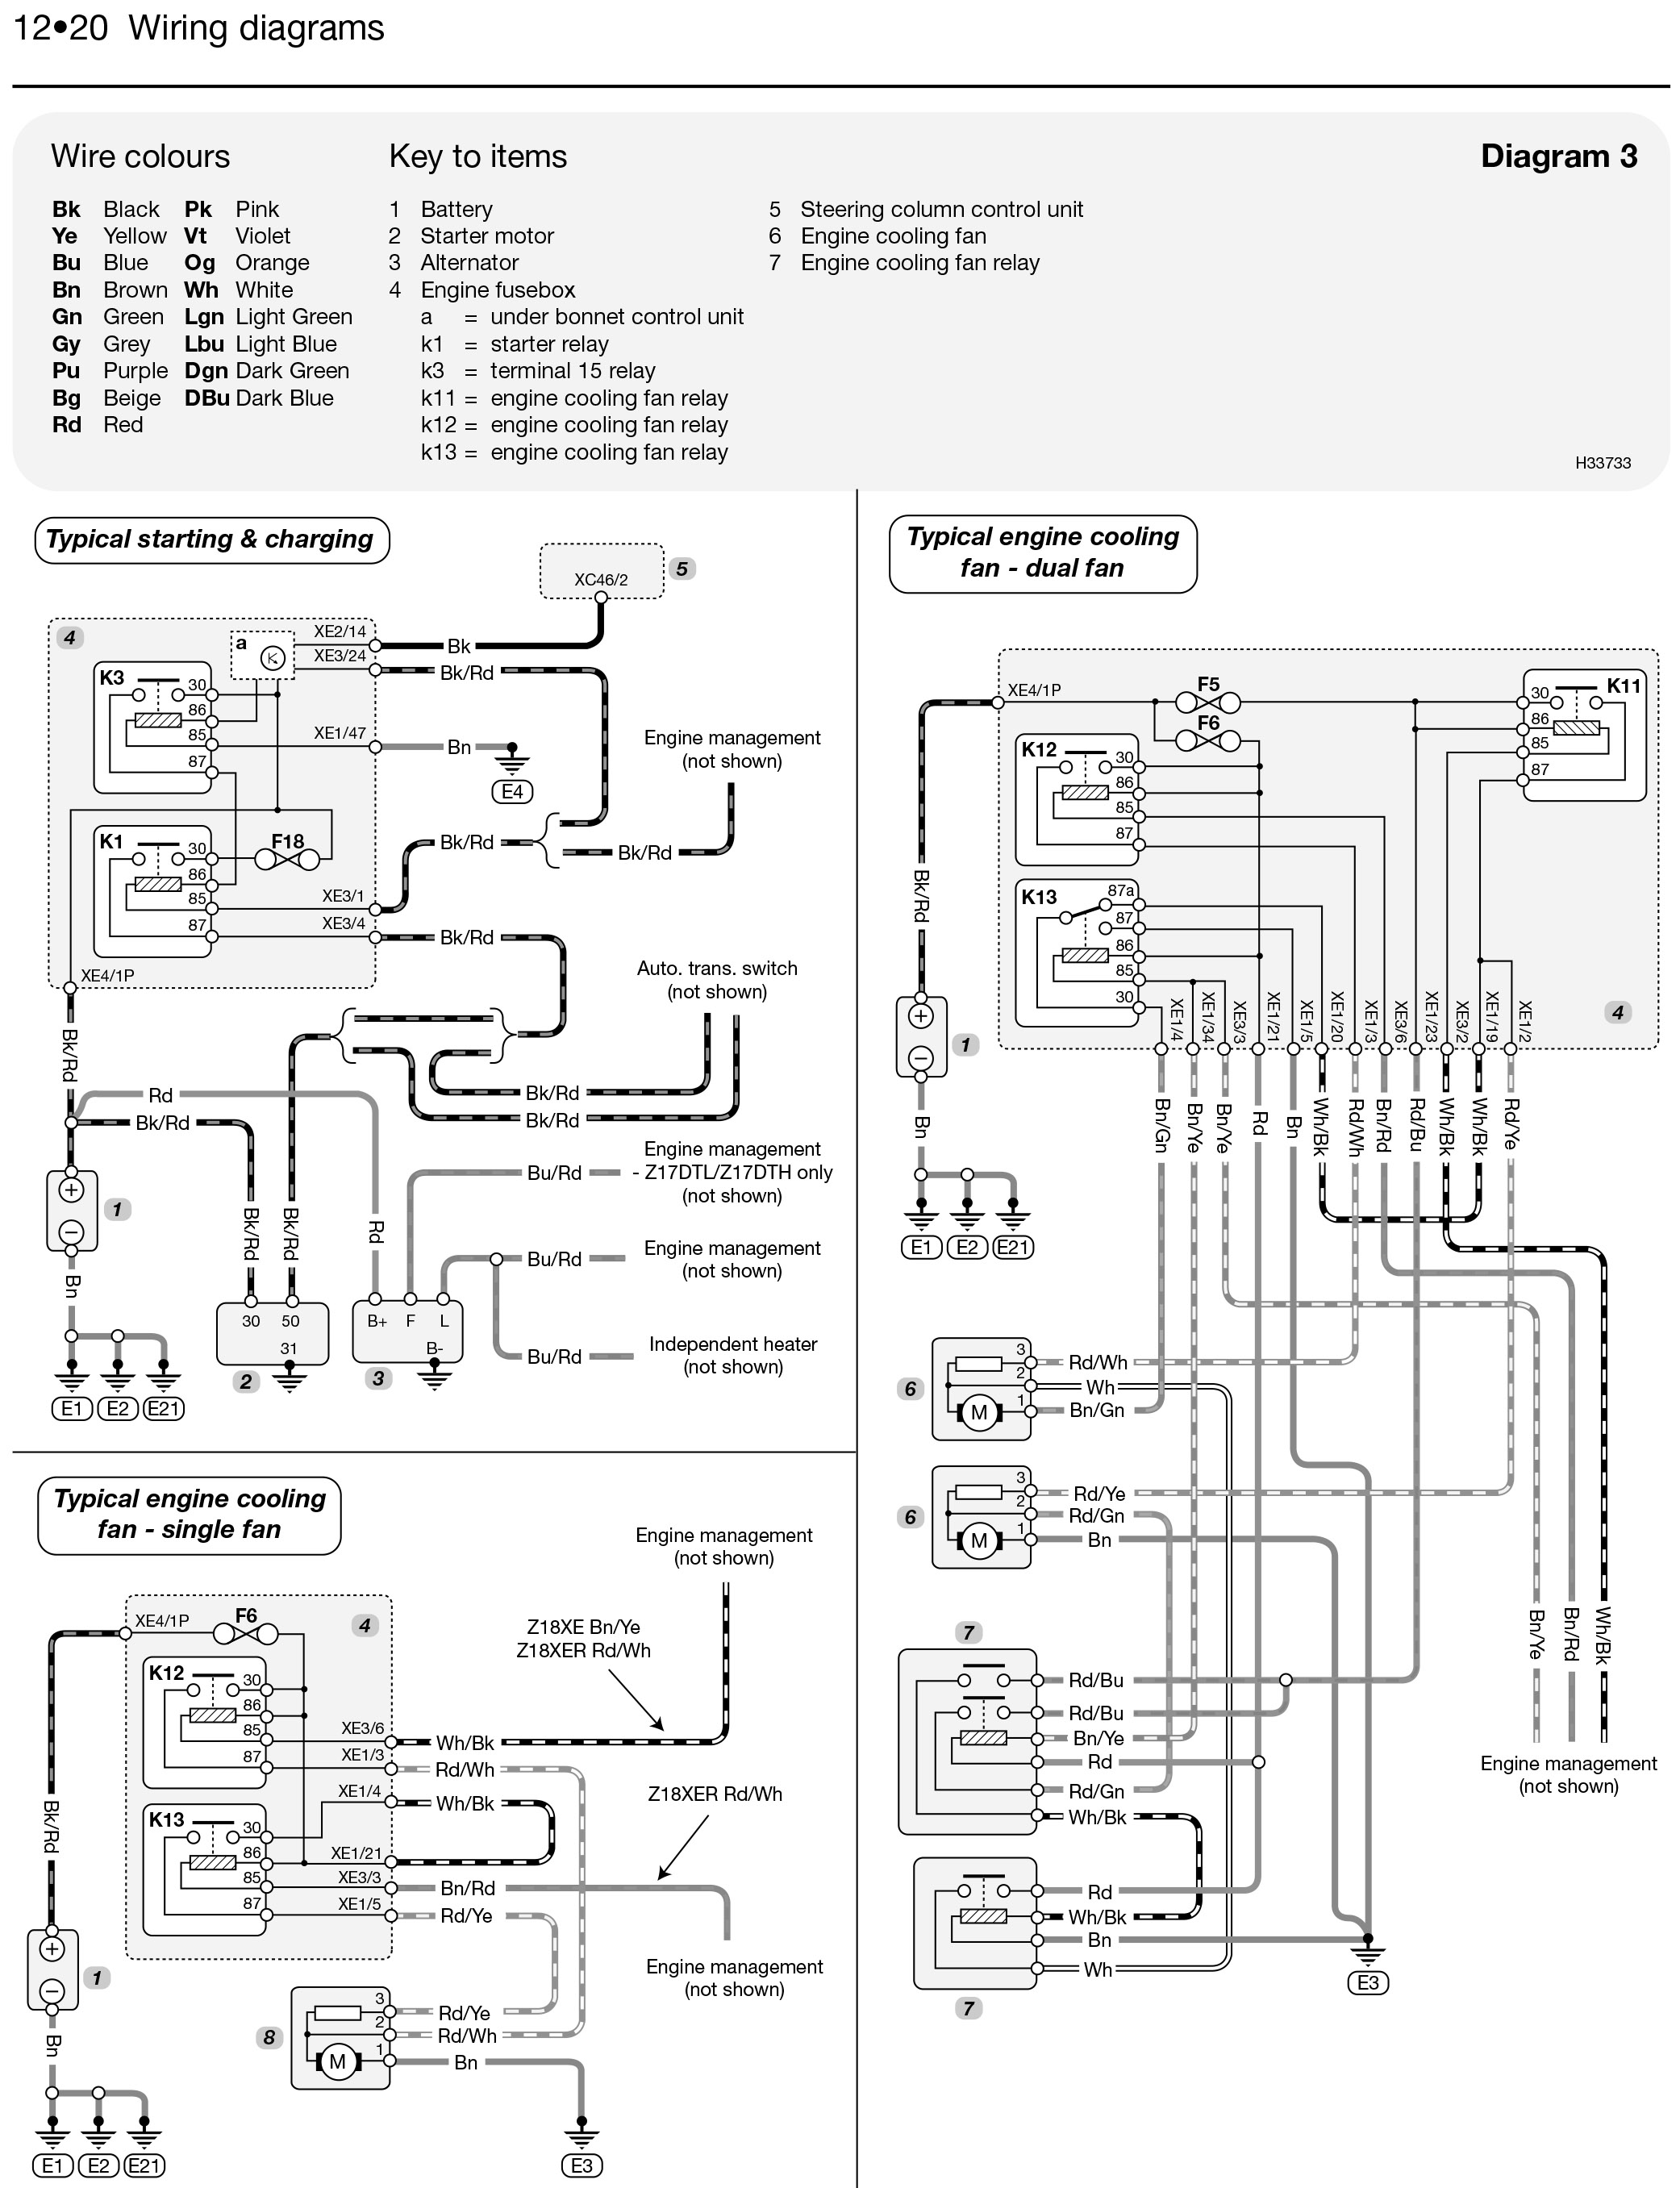 Opel Astra Wiring Diagram : 25 Wiring Diagram Images